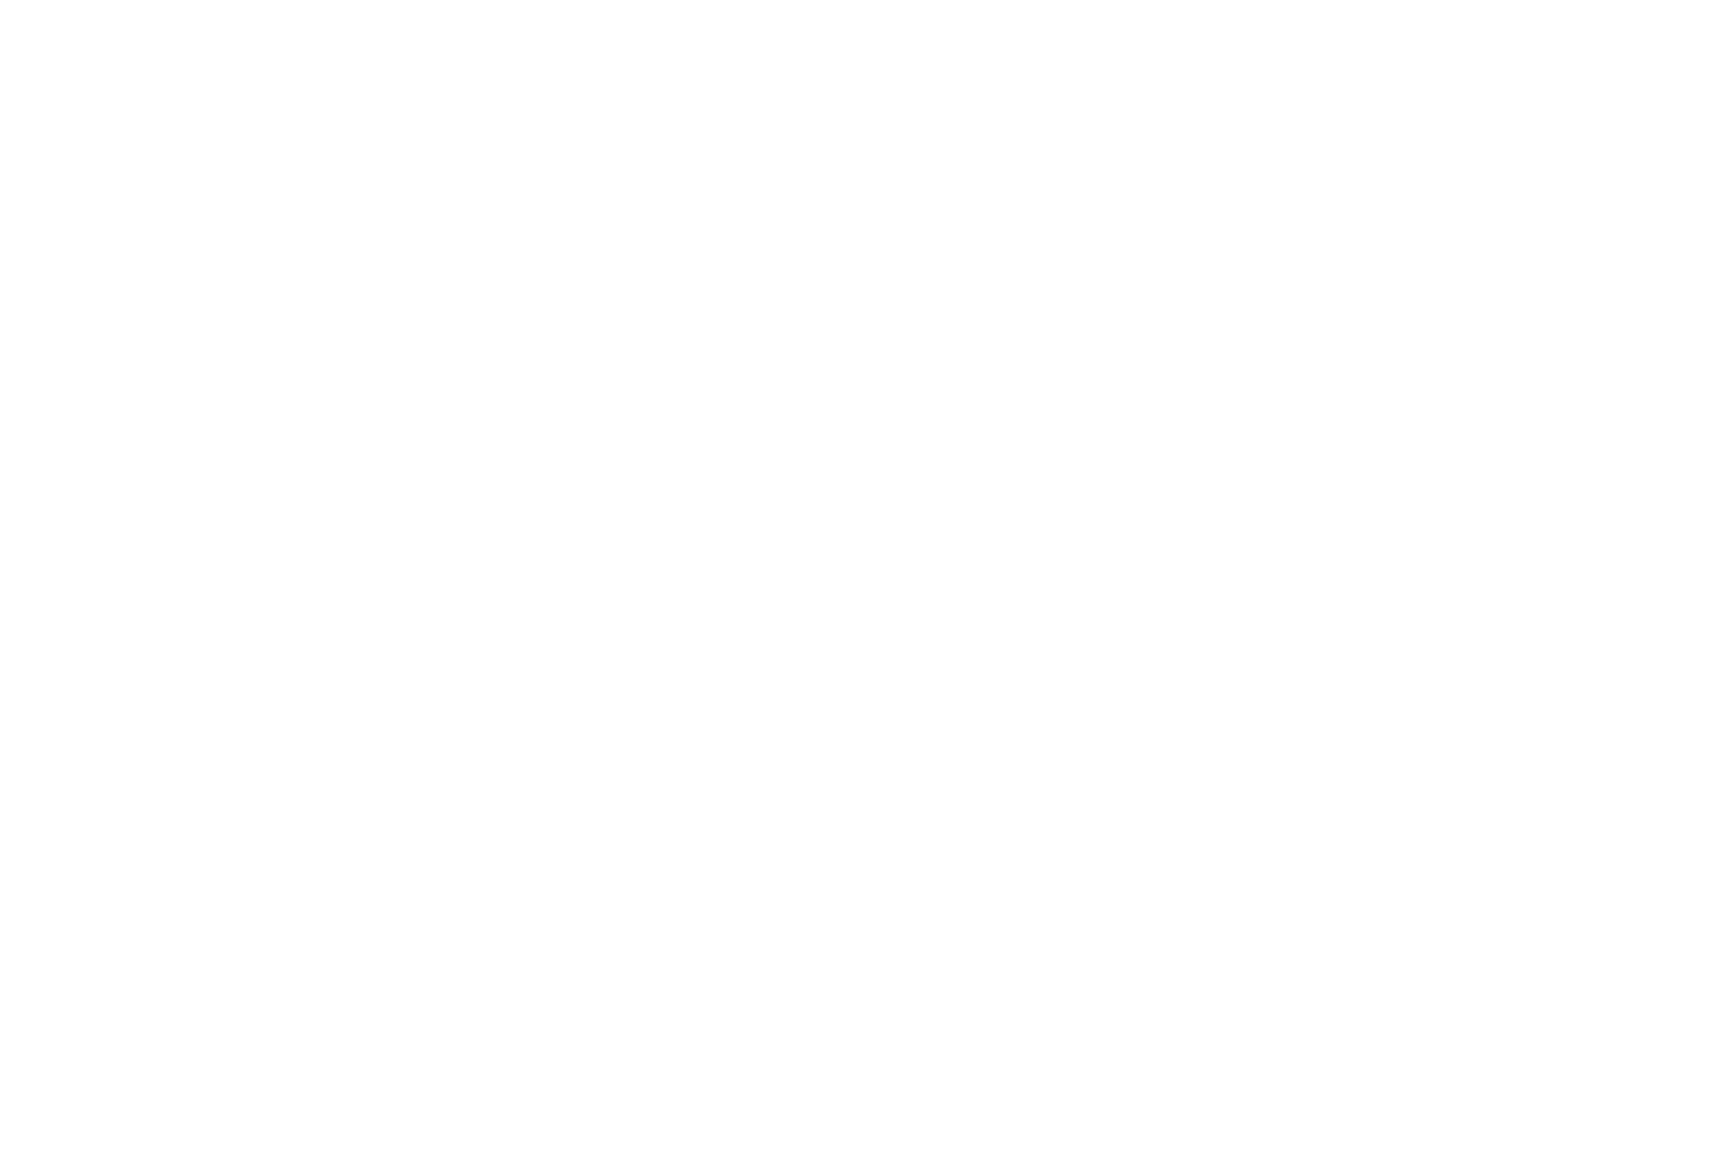 OFFICIAL SELECTION - Elements International Environmental Film Festival - 2019